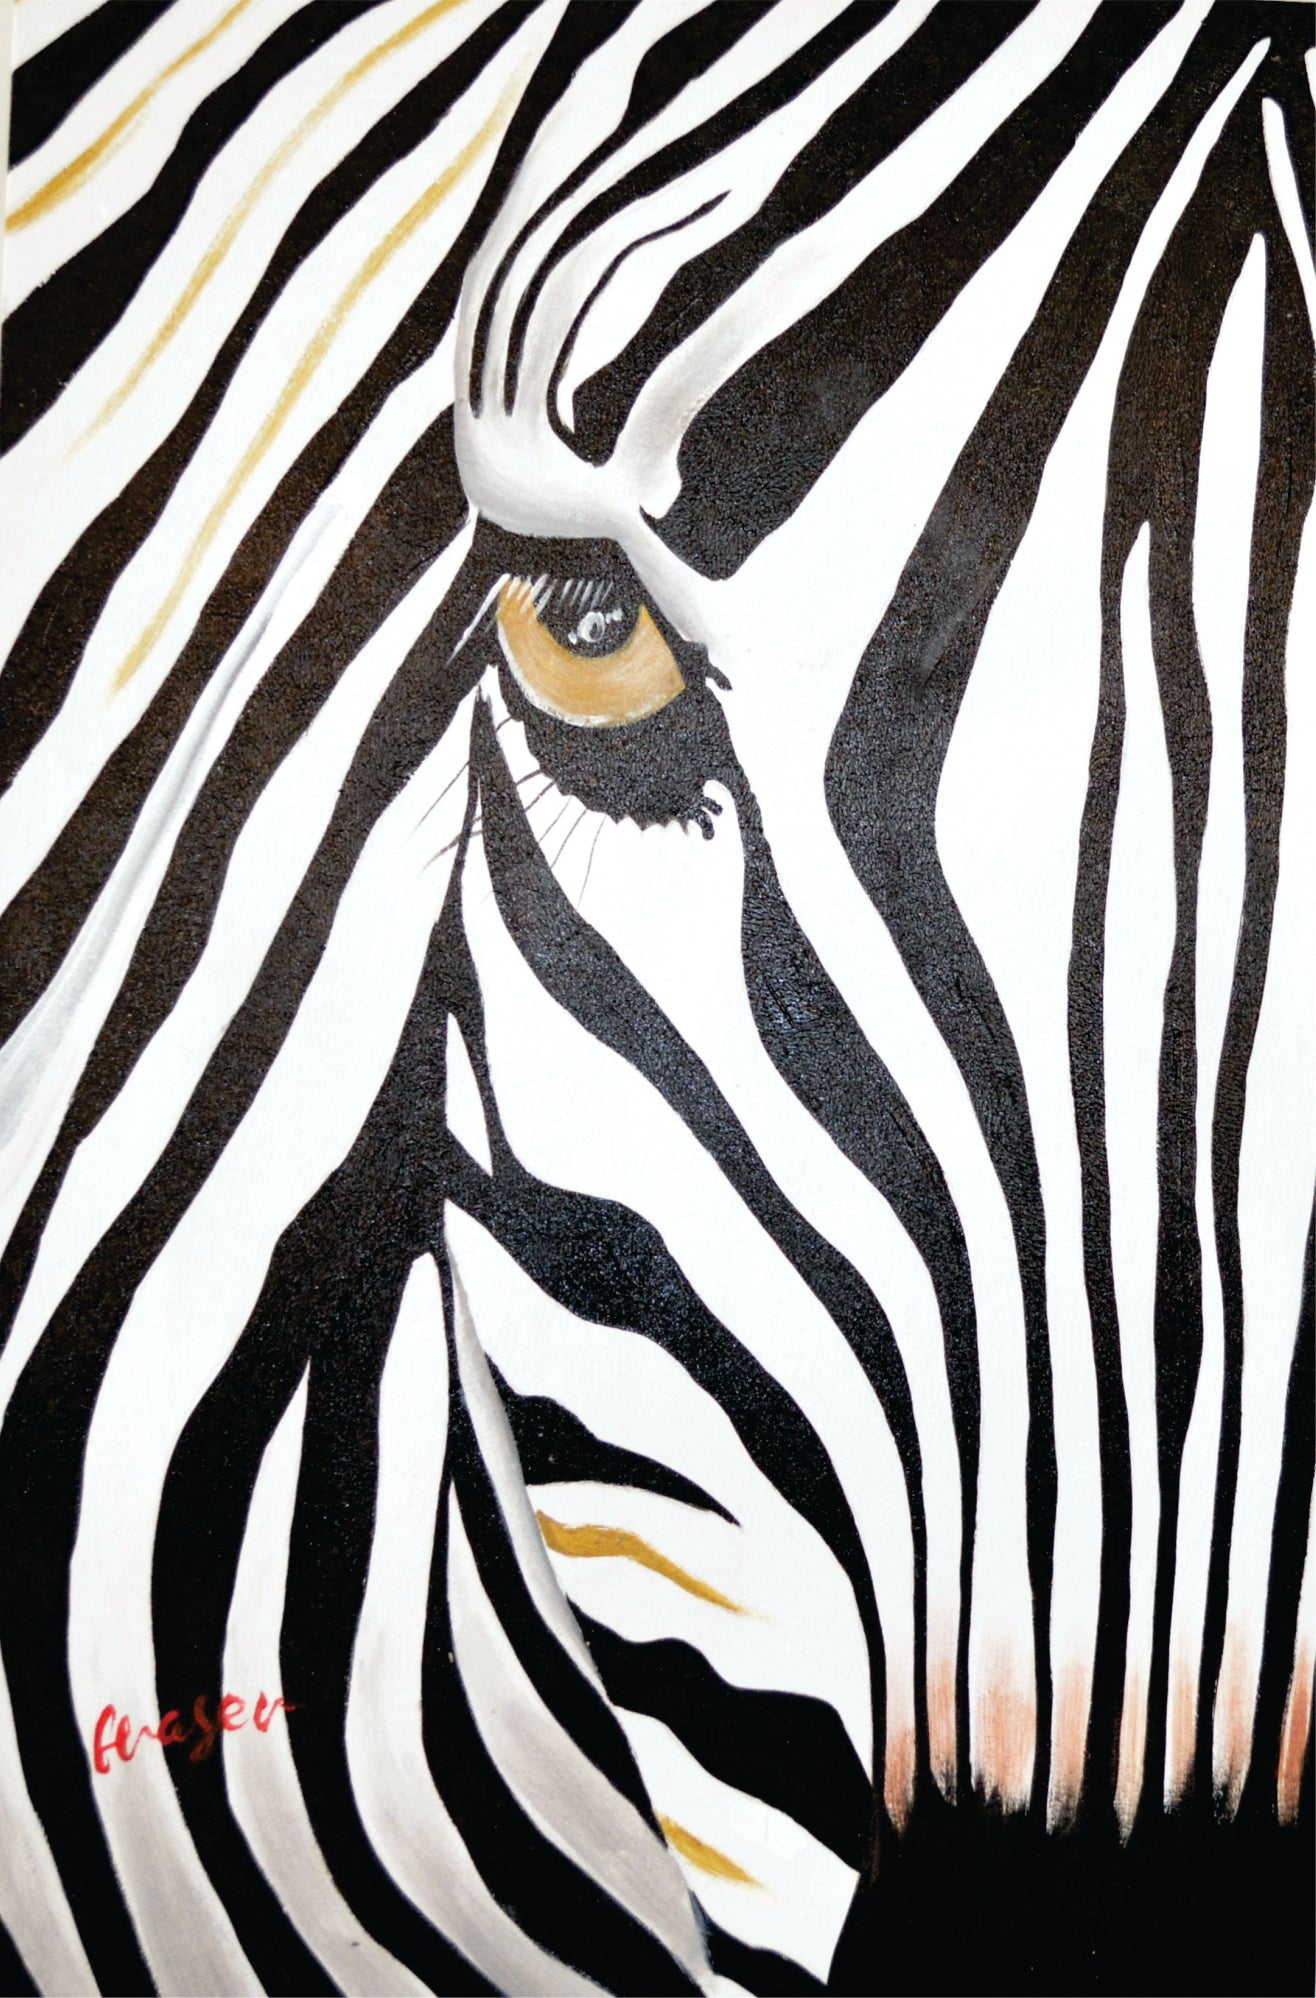 OLIVIA'S_LOFT | whiterock_artist | vancouver_artist | Affordable_Art | Animal_art | hand_painted_ wall_ art | Zebra_Painting | Black _and_white_painting | interior_design_art